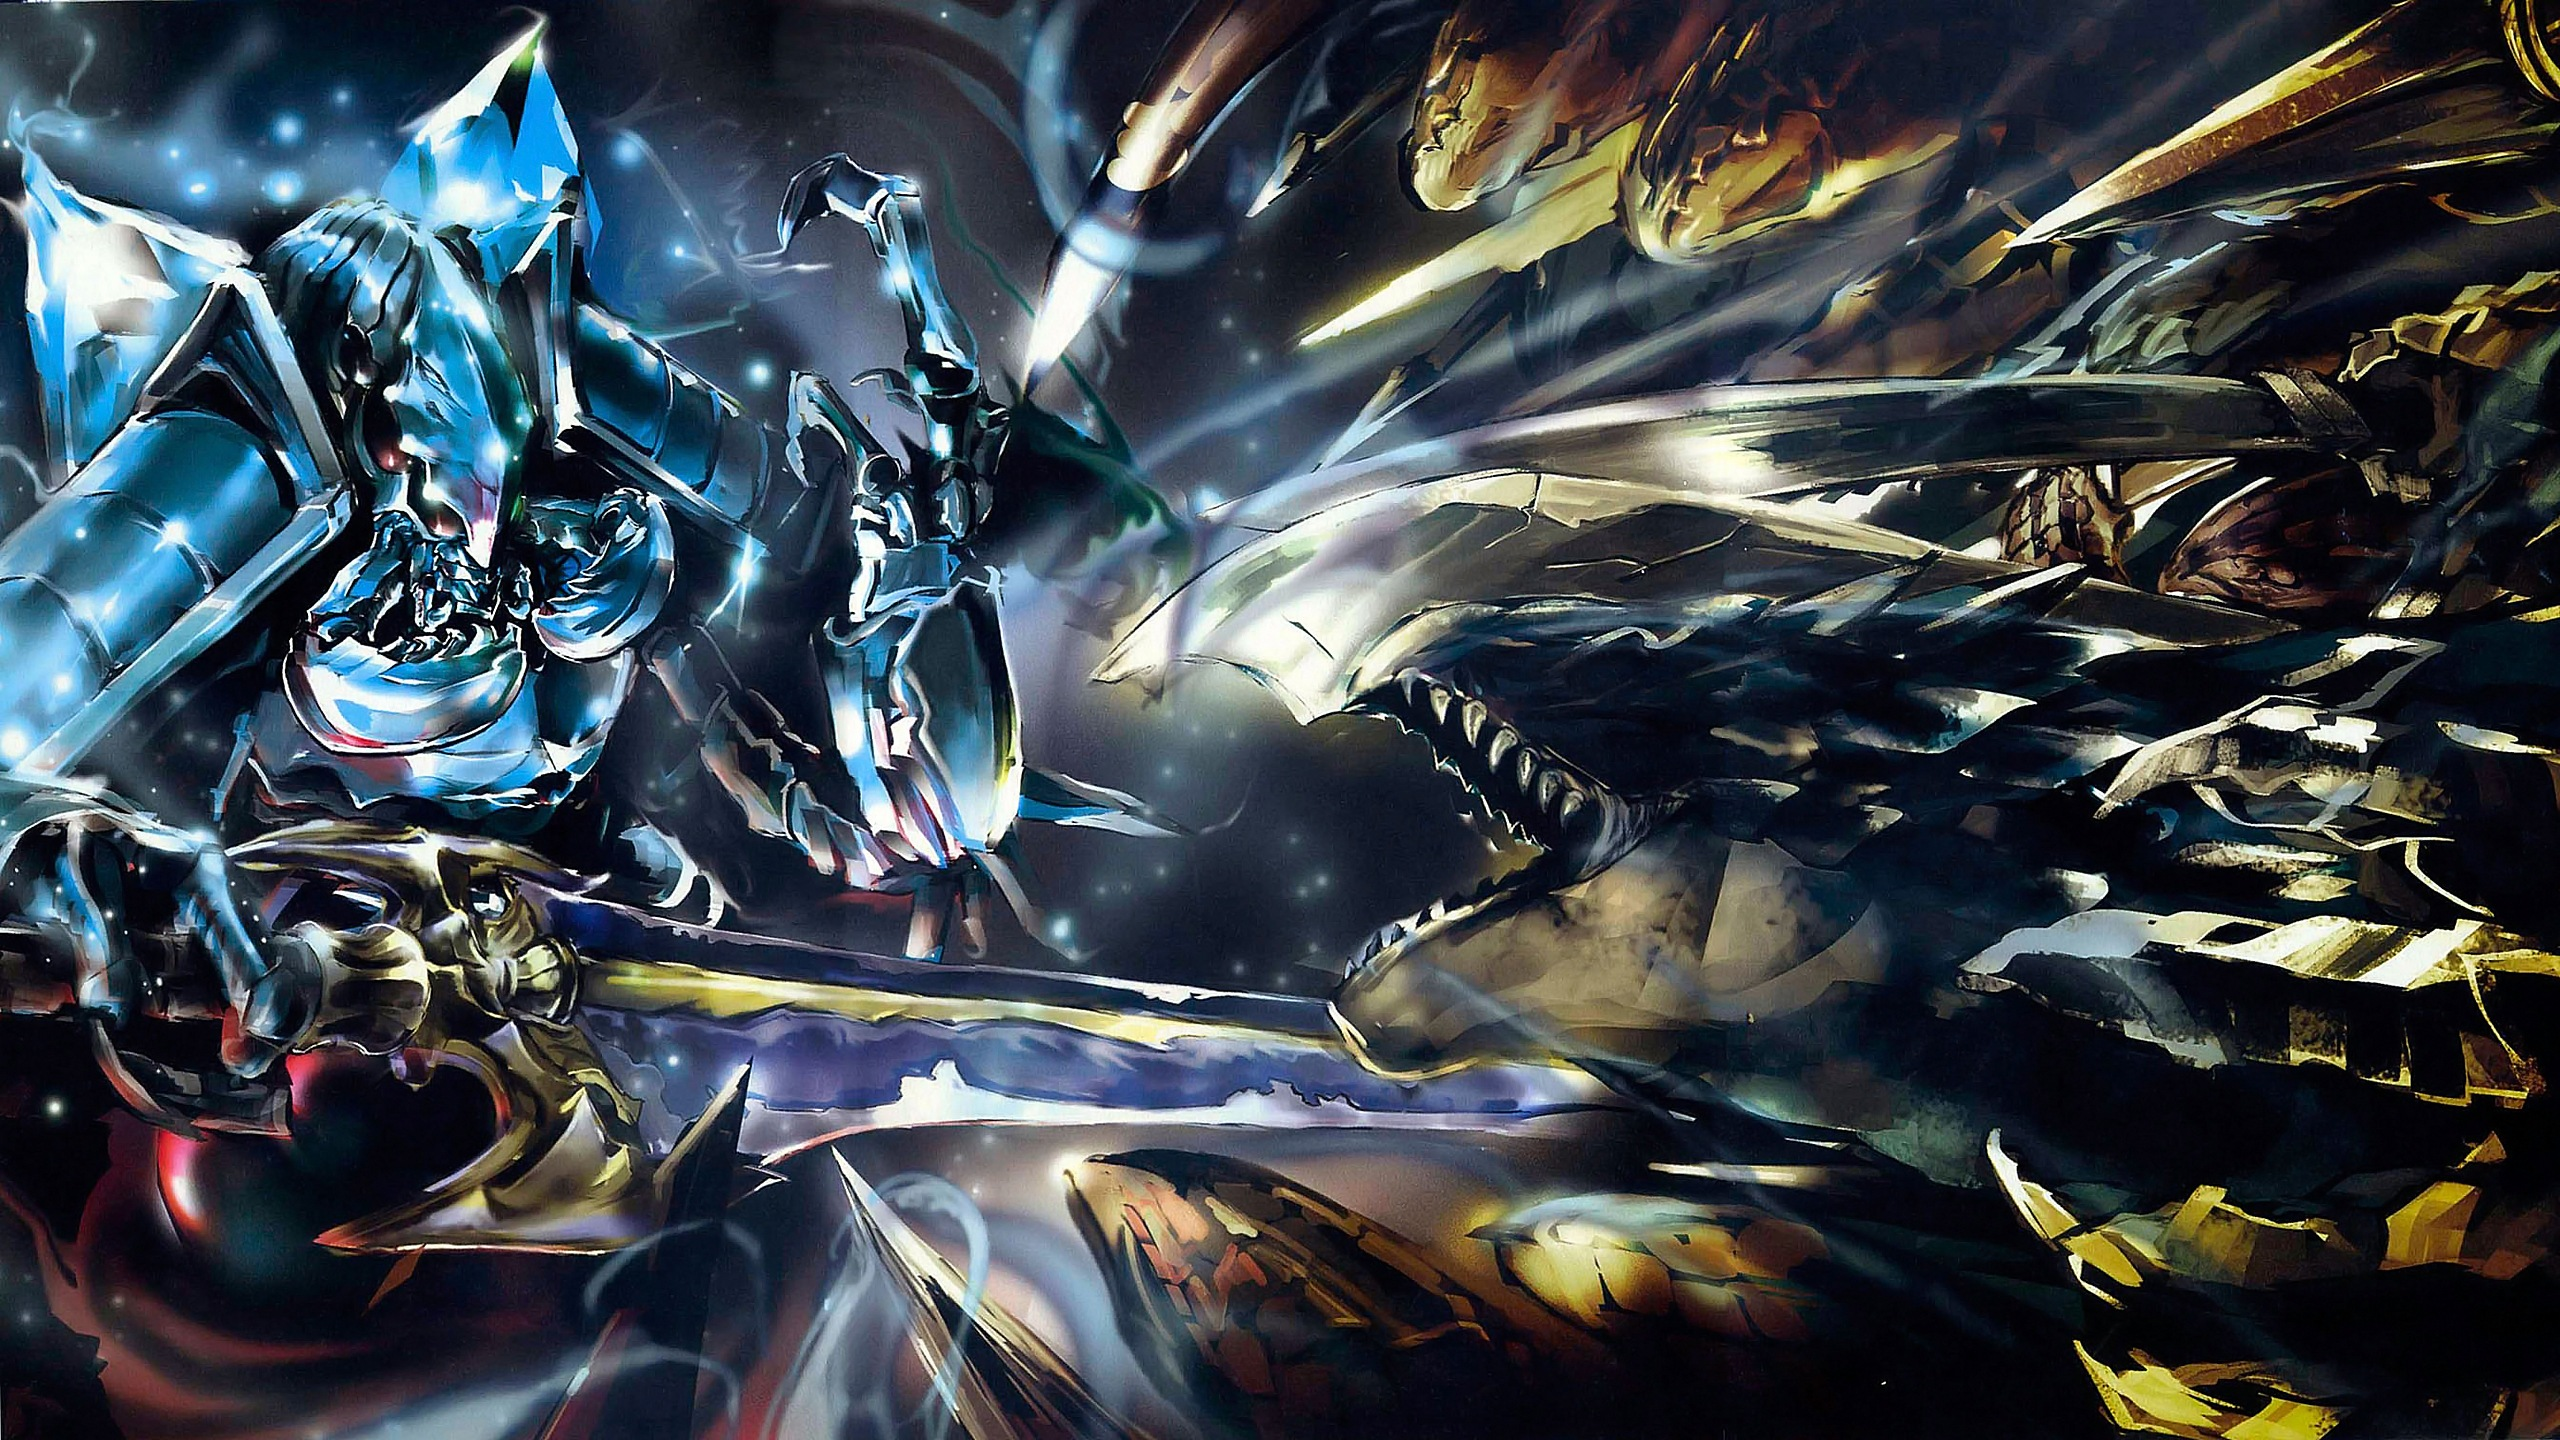 Overlord Wallpaper Hd Overlord Backgrounds 471465 Hd Wallpaper Backgrounds Download